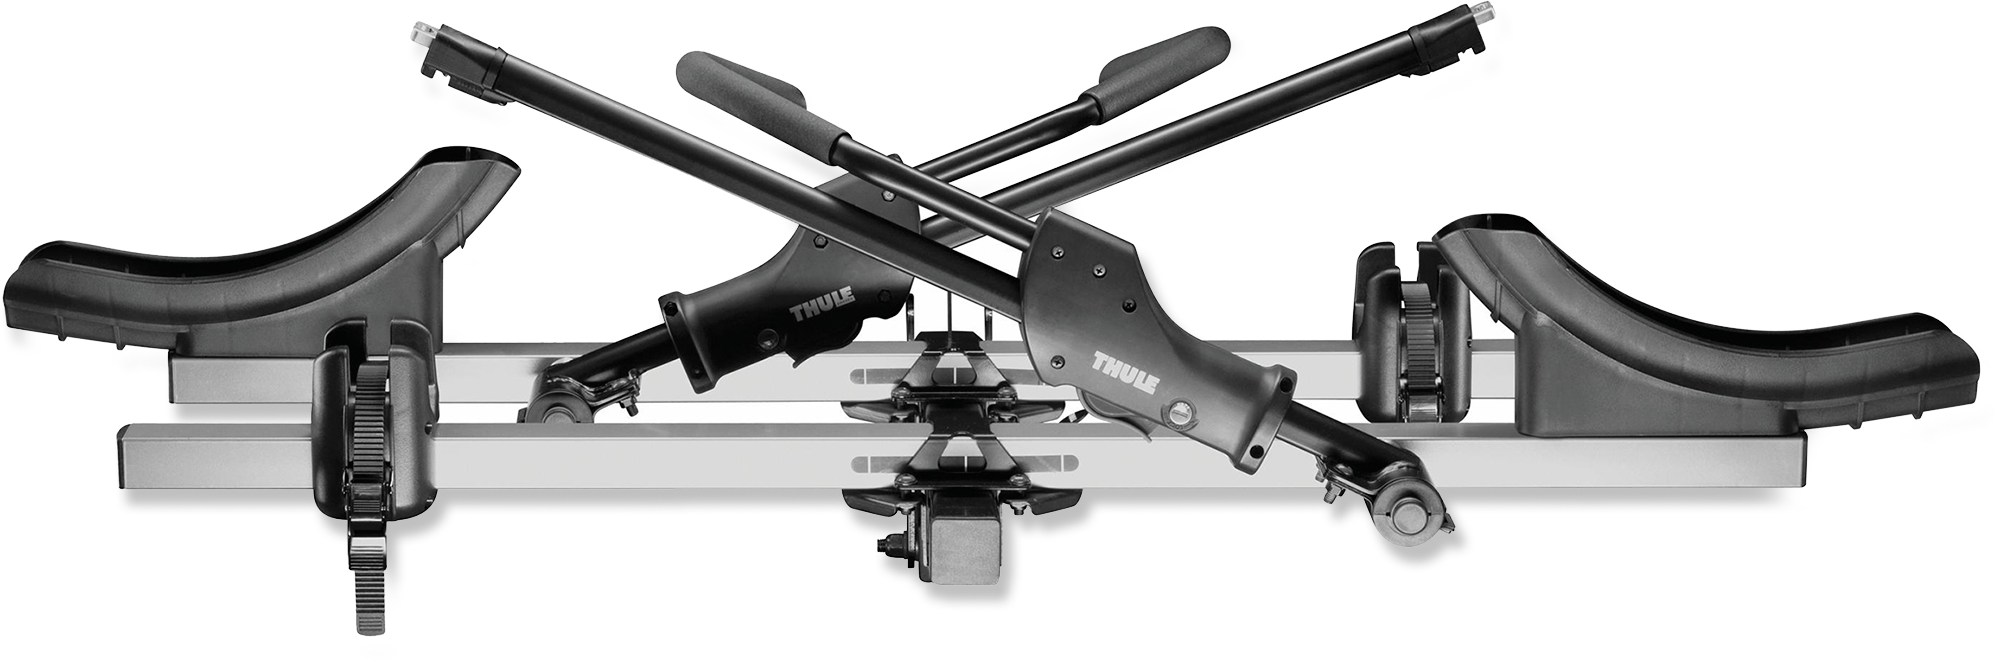 tHULE-t2-xtr-bike-rack